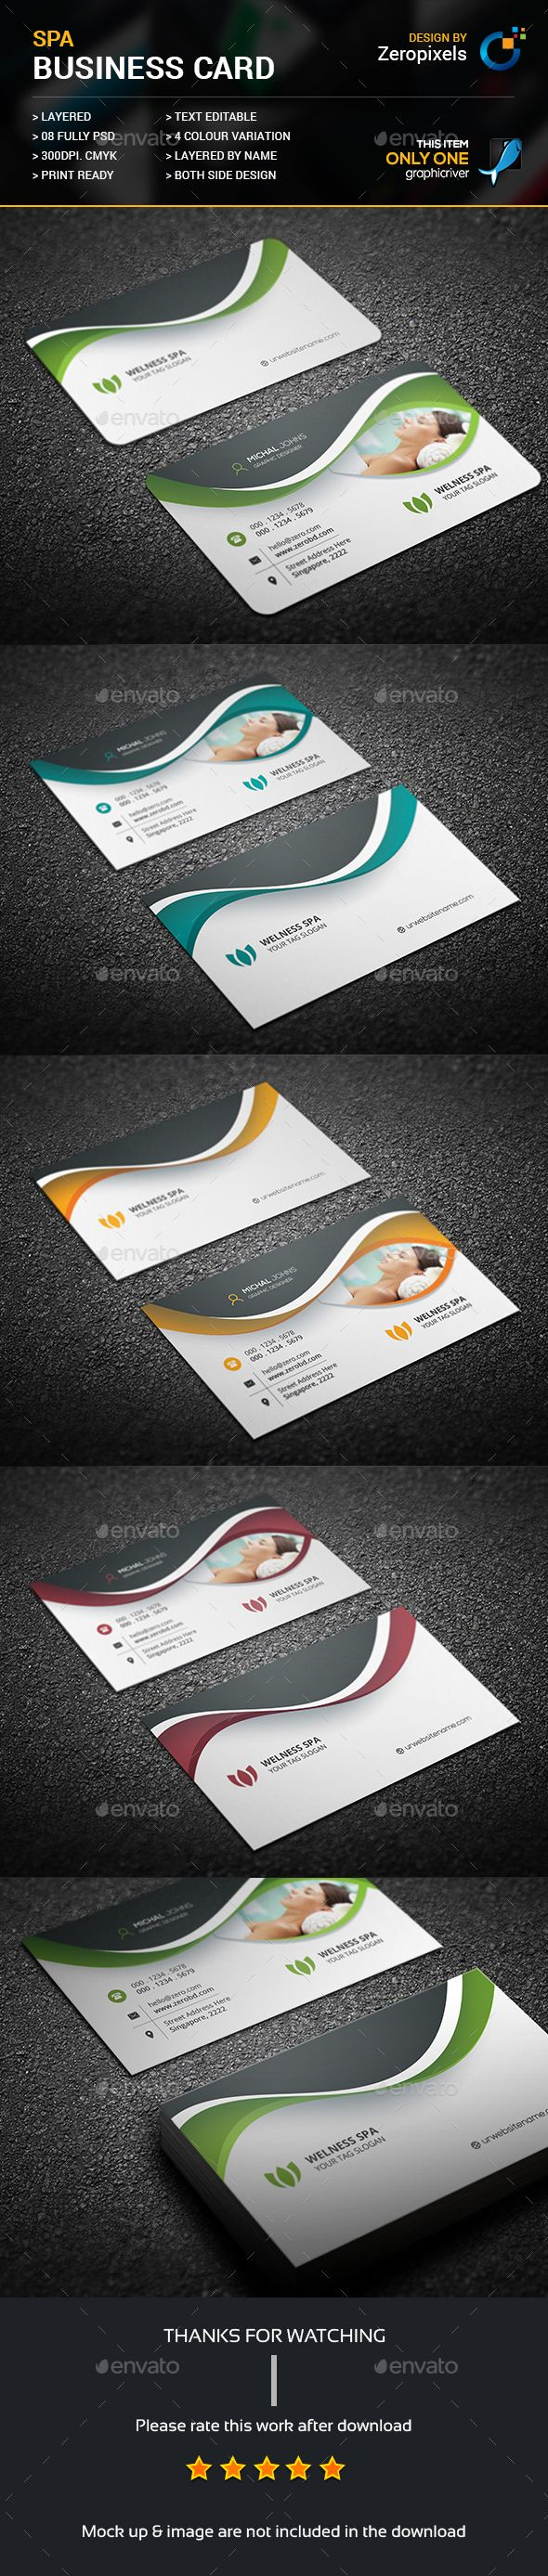 Best 25 massage therapy business cards ideas on pinterest best 25 massage therapy business cards ideas on pinterest massage logo massage business and massage therapy magicingreecefo Choice Image